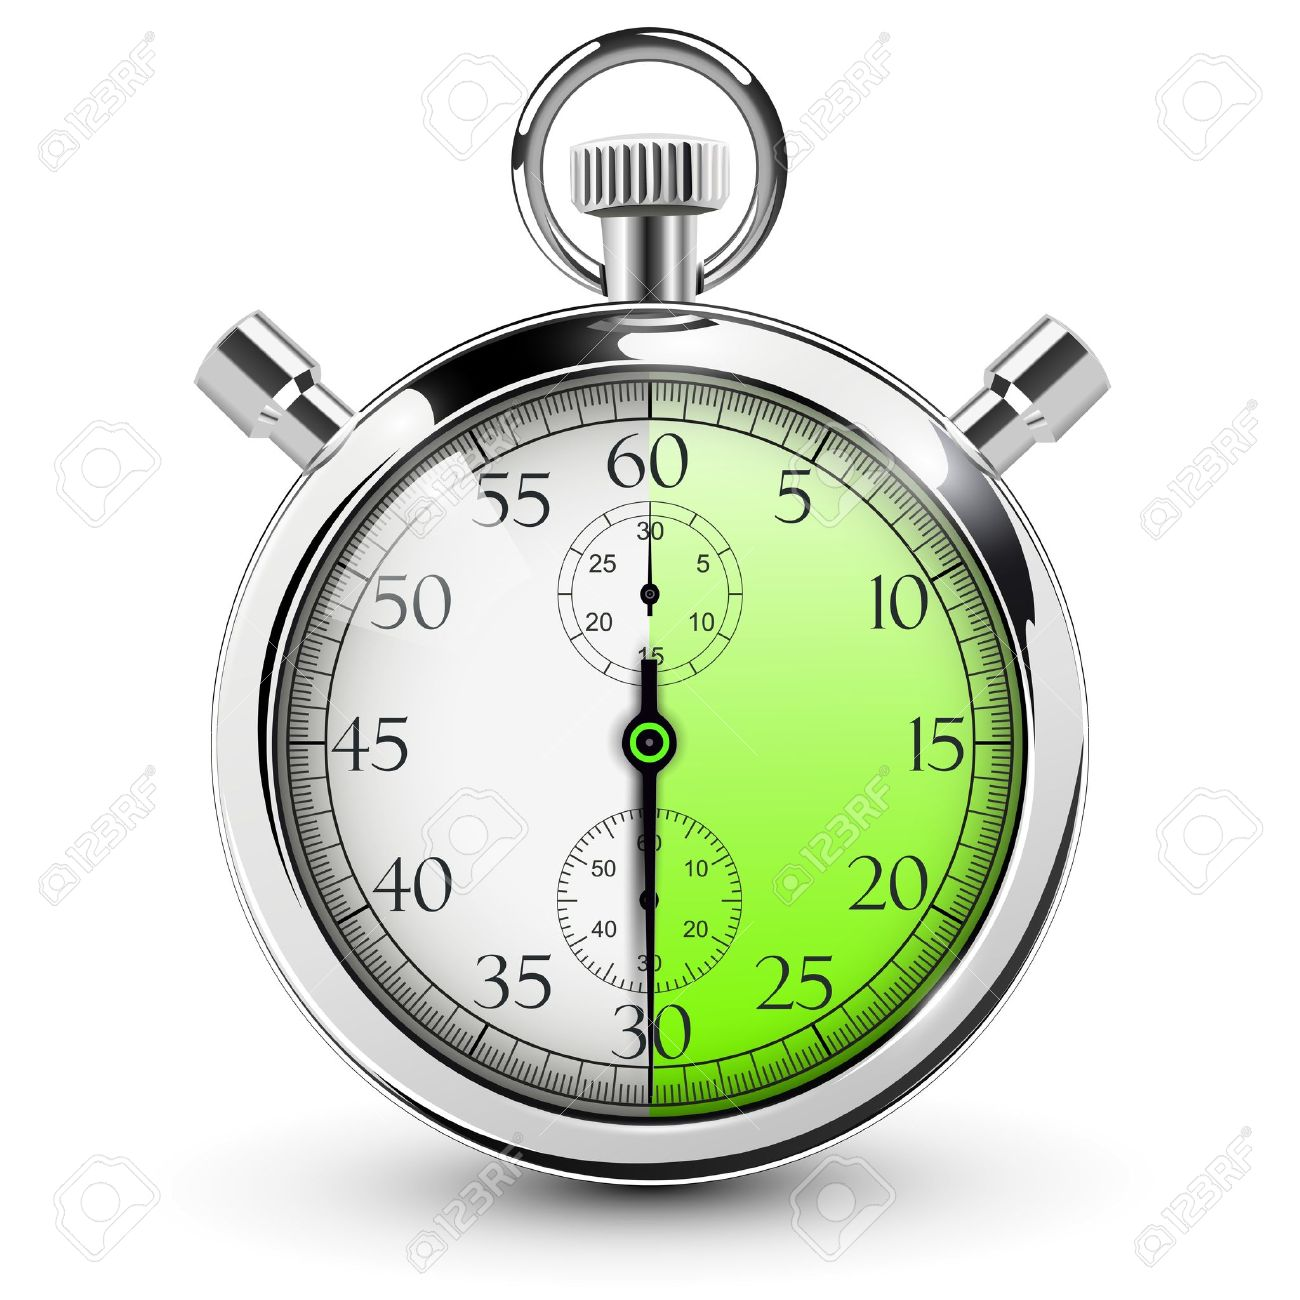 30 Seconds Stop Watch. Royalty Free Cliparts, Vectors, And Stock ...